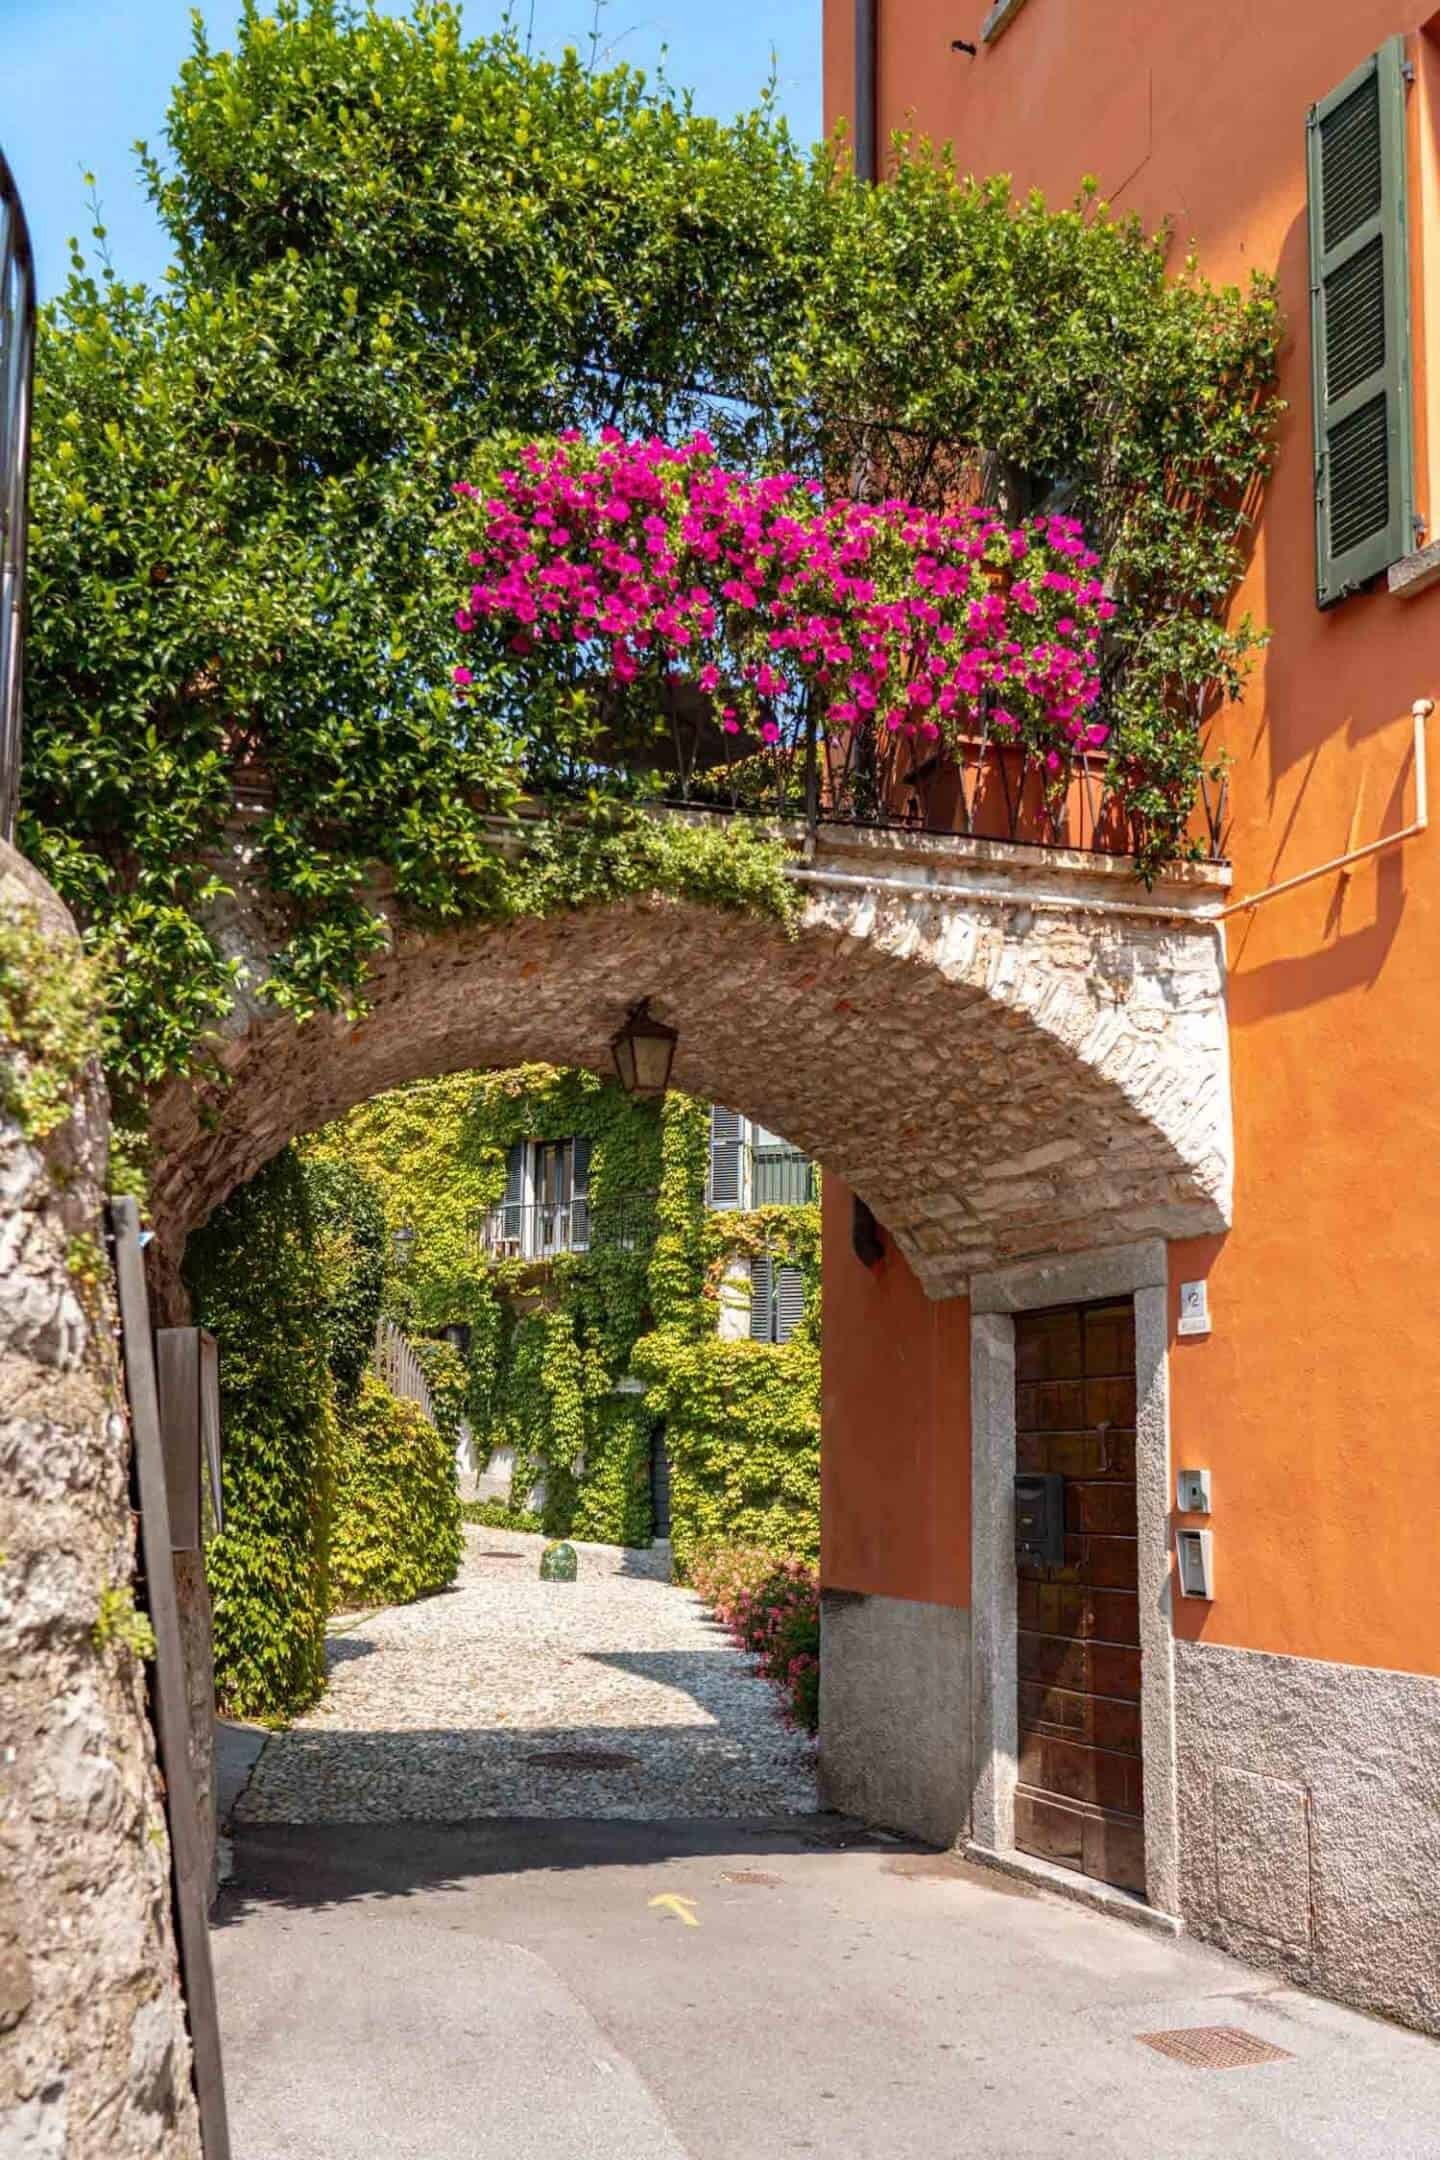 Greenery and flowers adorn an archway in Pescallo, Bellagio